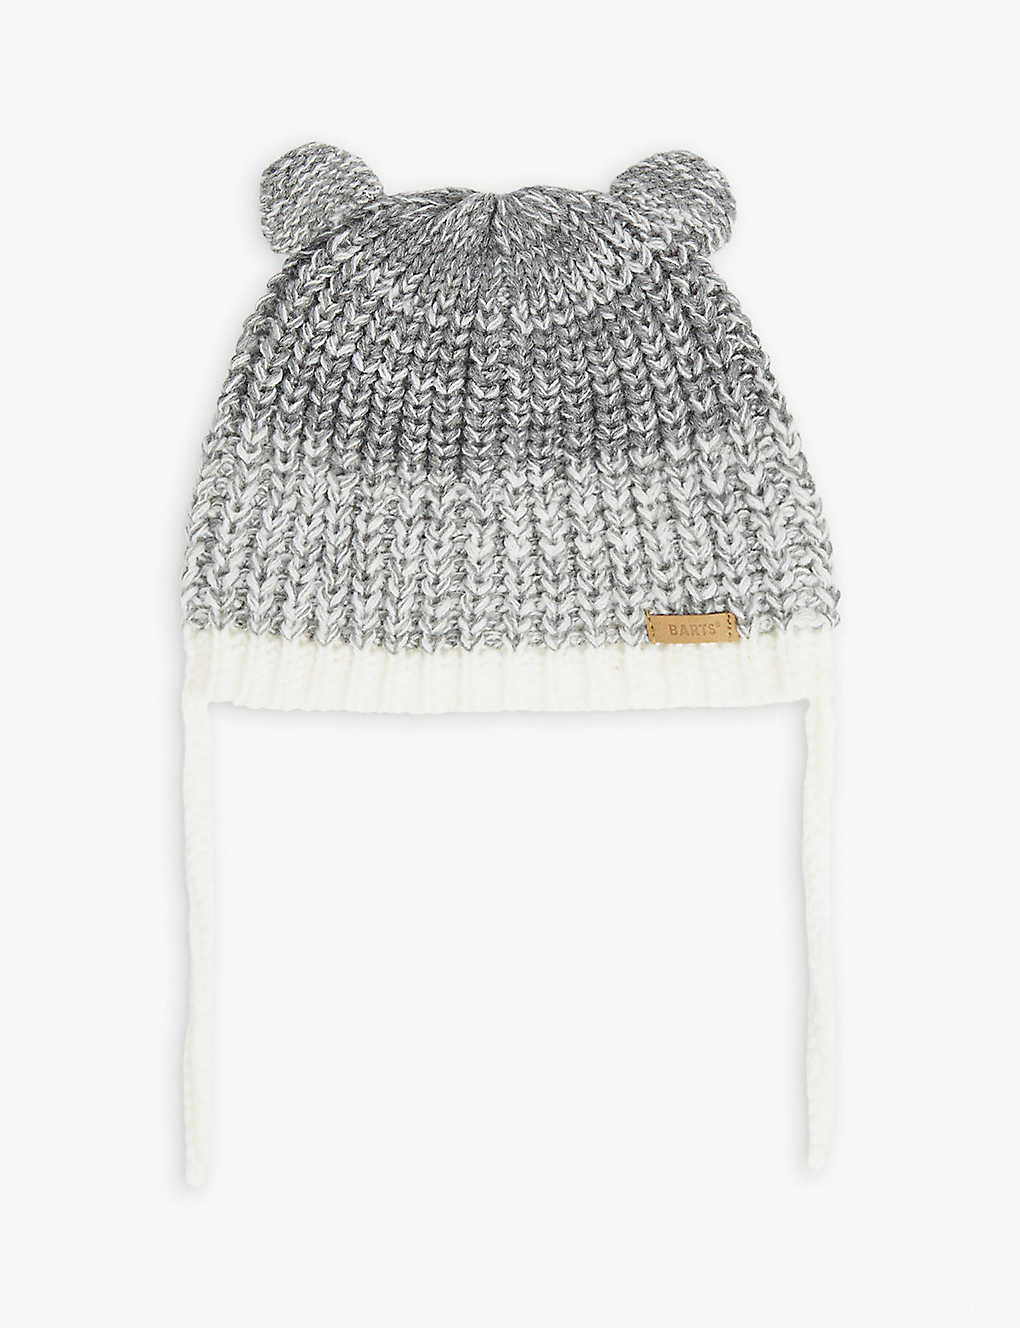 BARTS AL: Knitted beanie with ears